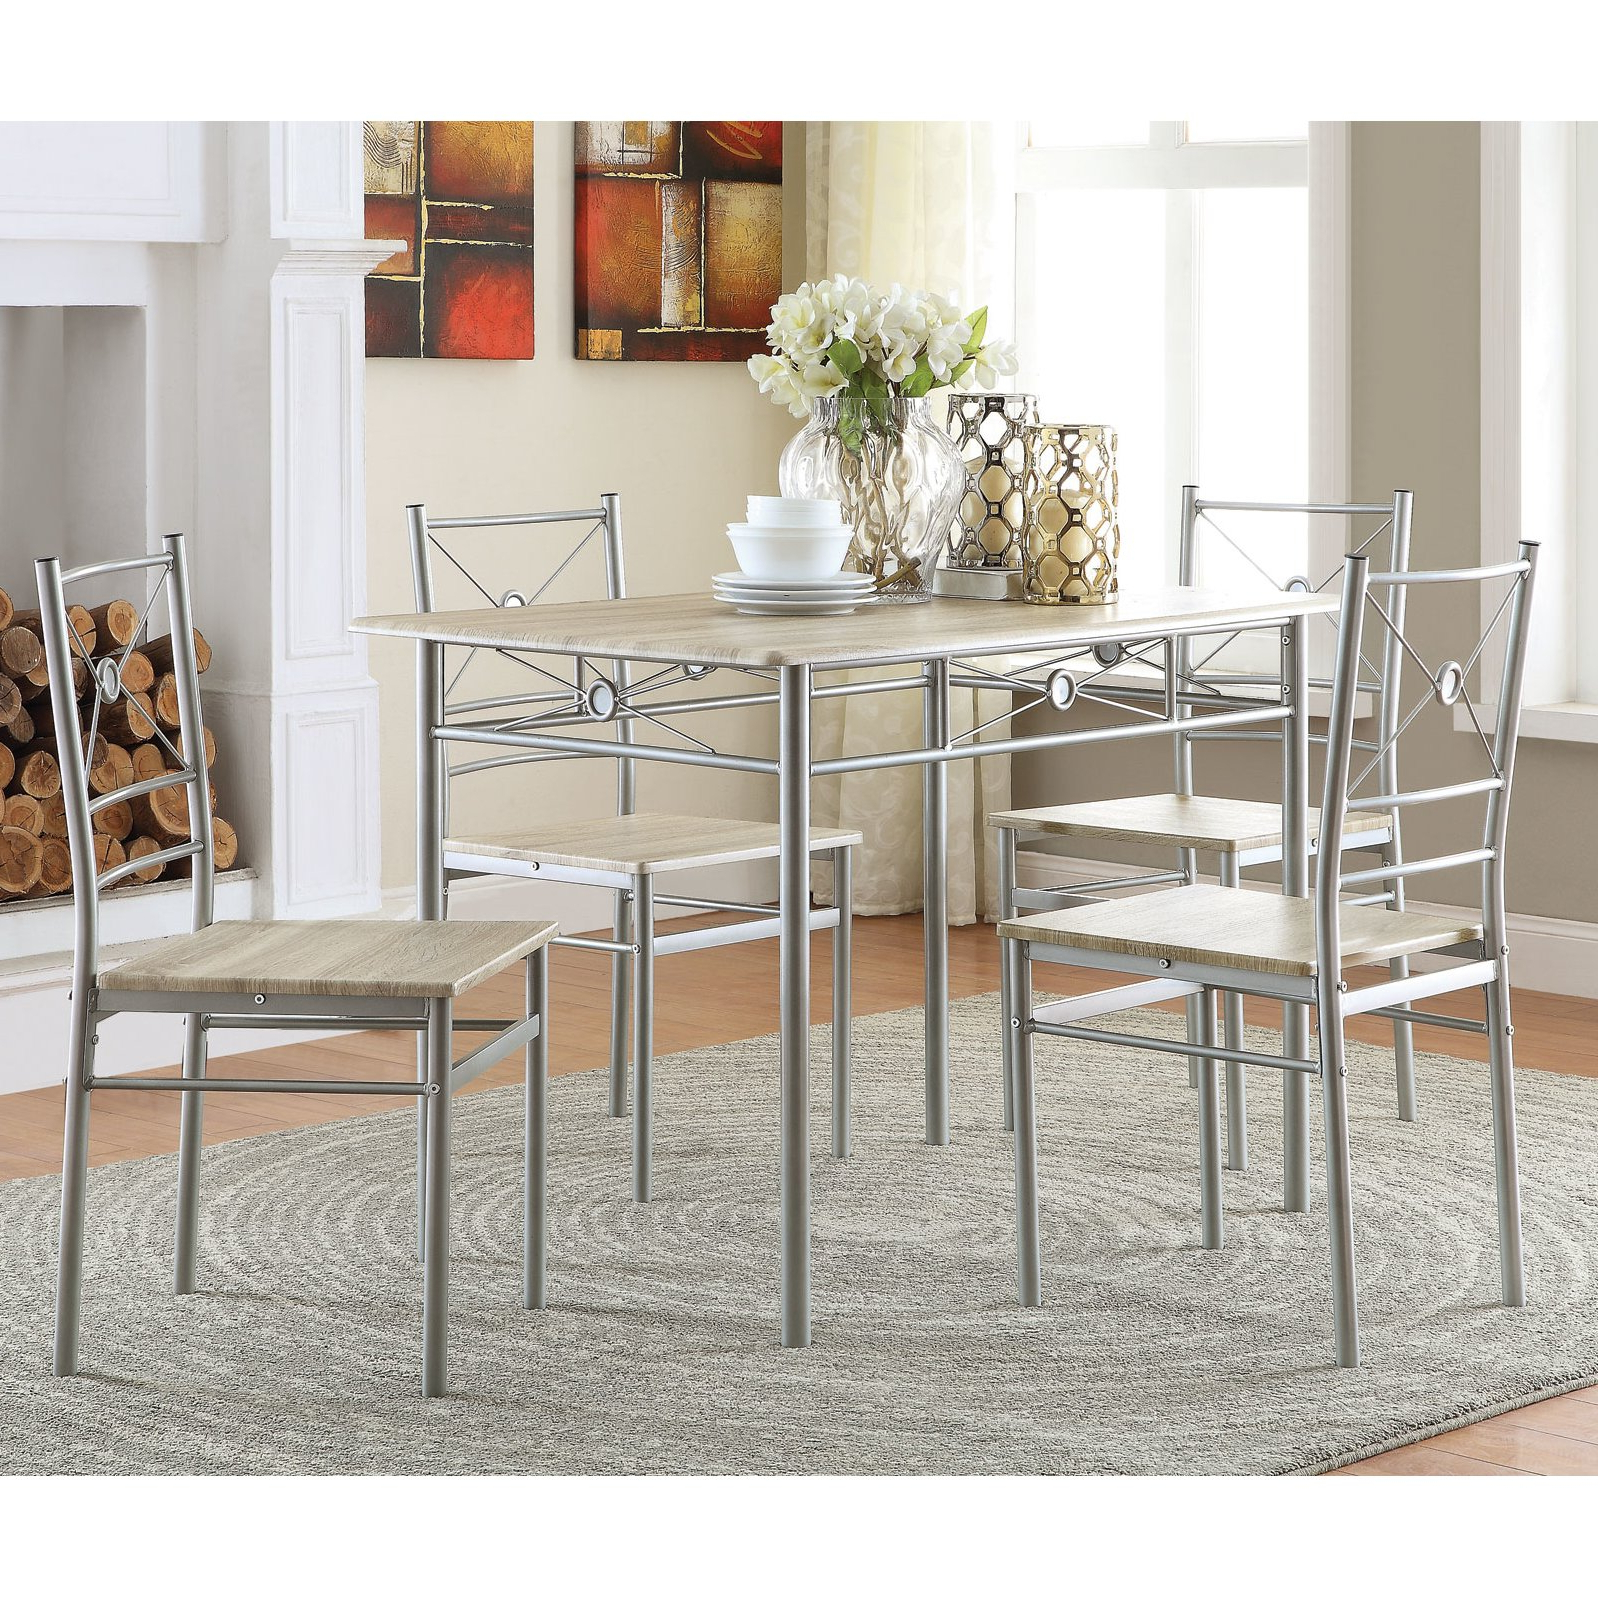 Well Known Details About Kieffer 5 Piece Dining Table And Chairs Beautiful Kitchen  Room Furniture Set Pertaining To Kieffer 5 Piece Dining Sets (View 17 of 20)